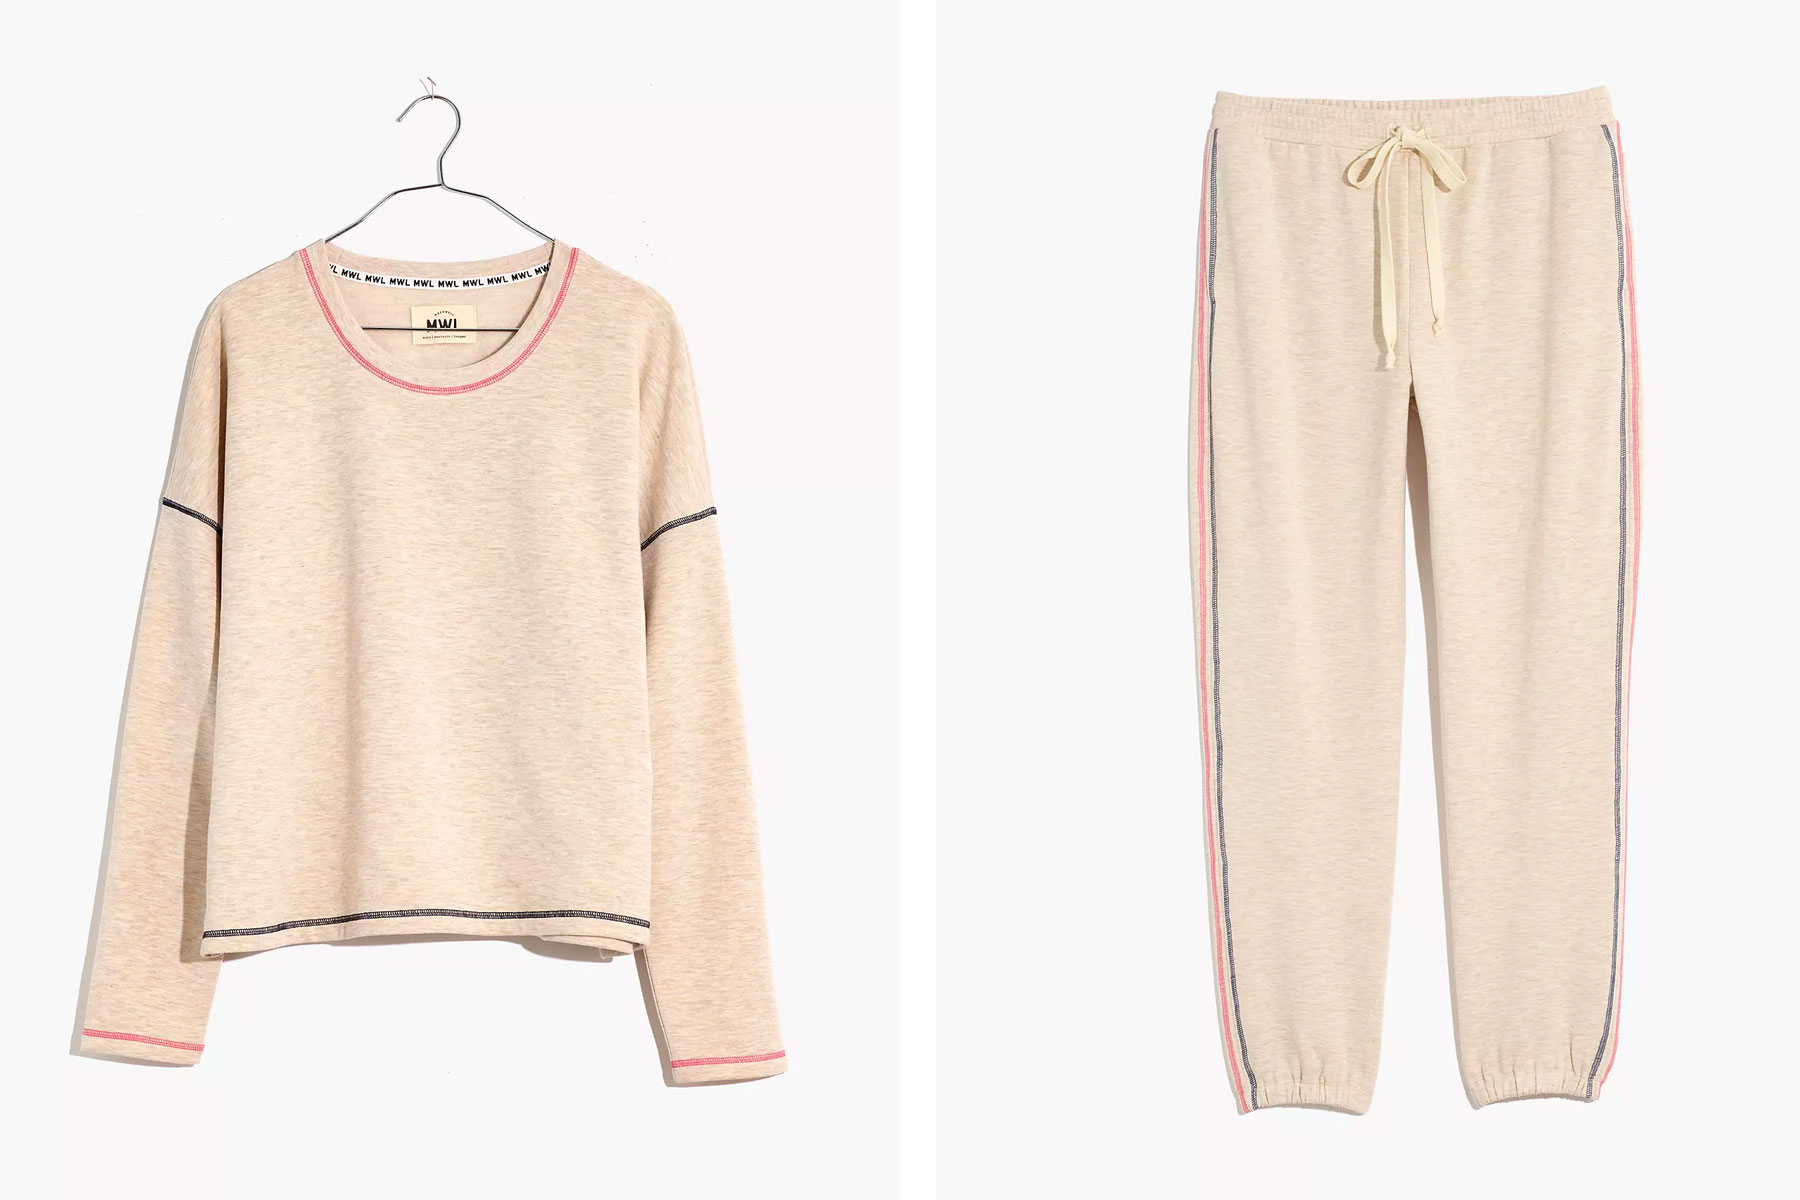 Oatmeal and pink-colored sweatsuit